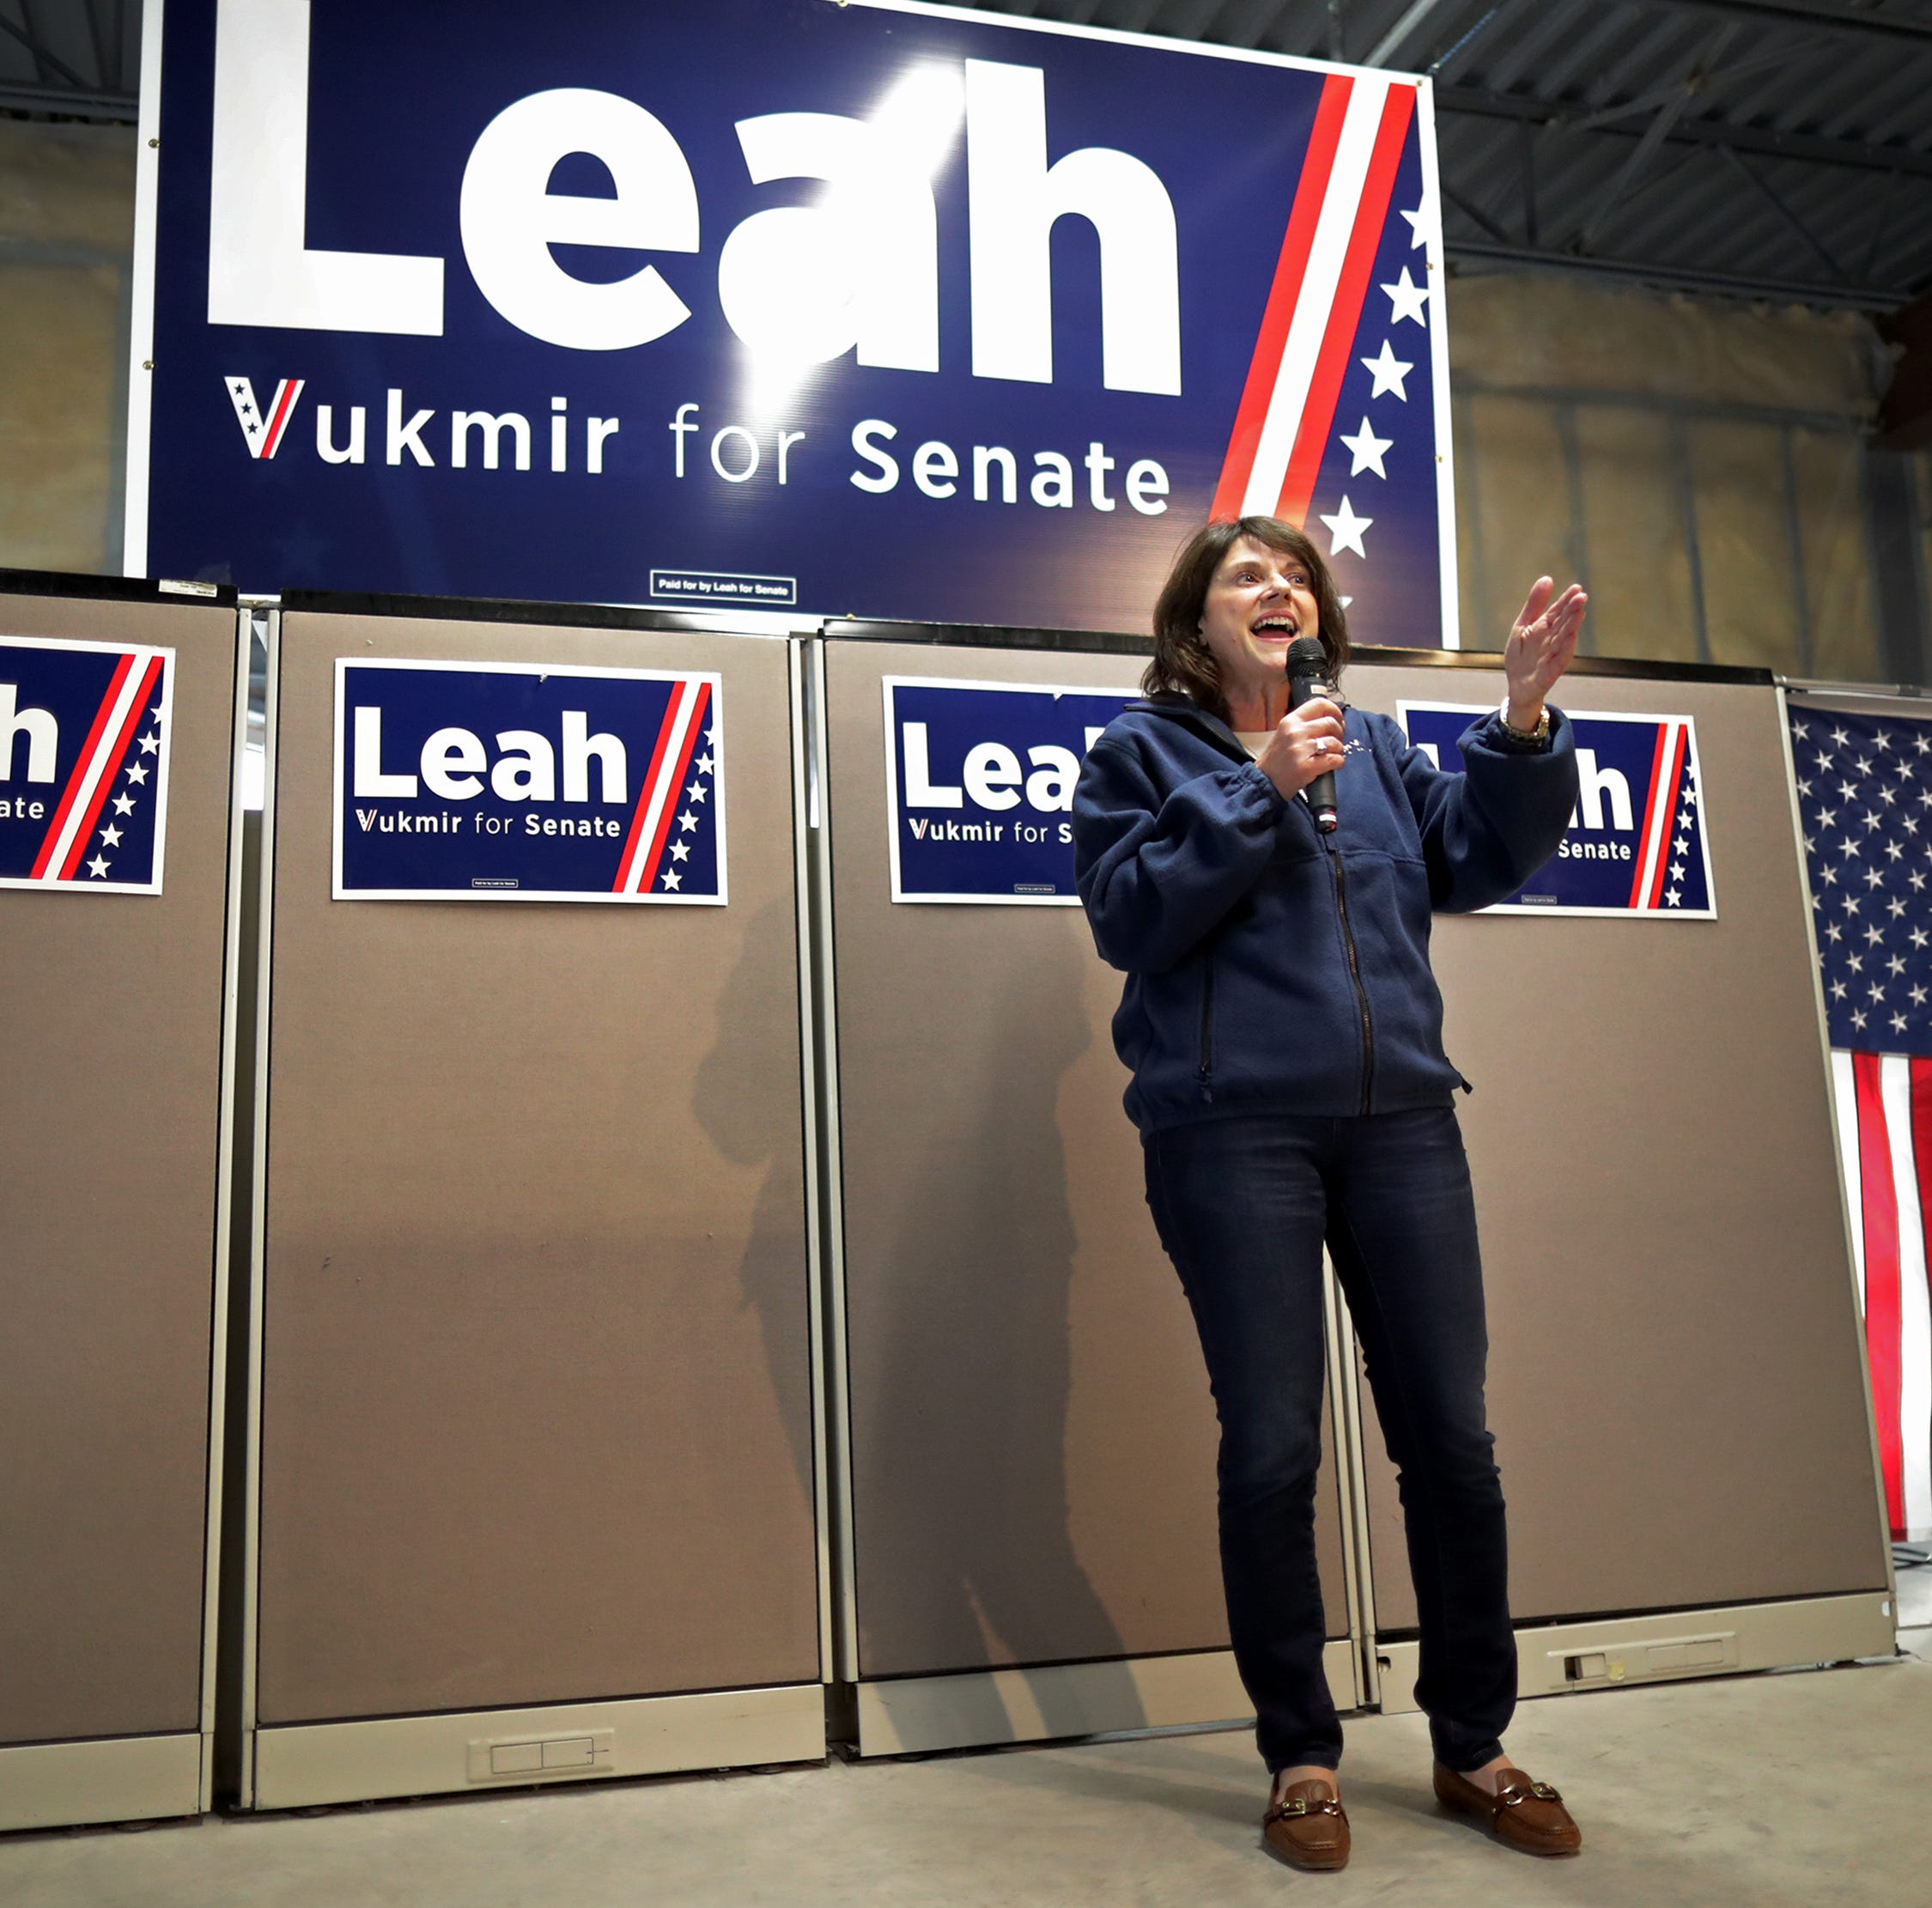 Leah Vukmir to visit Marathon County Republican headquarters on final day of campaigning